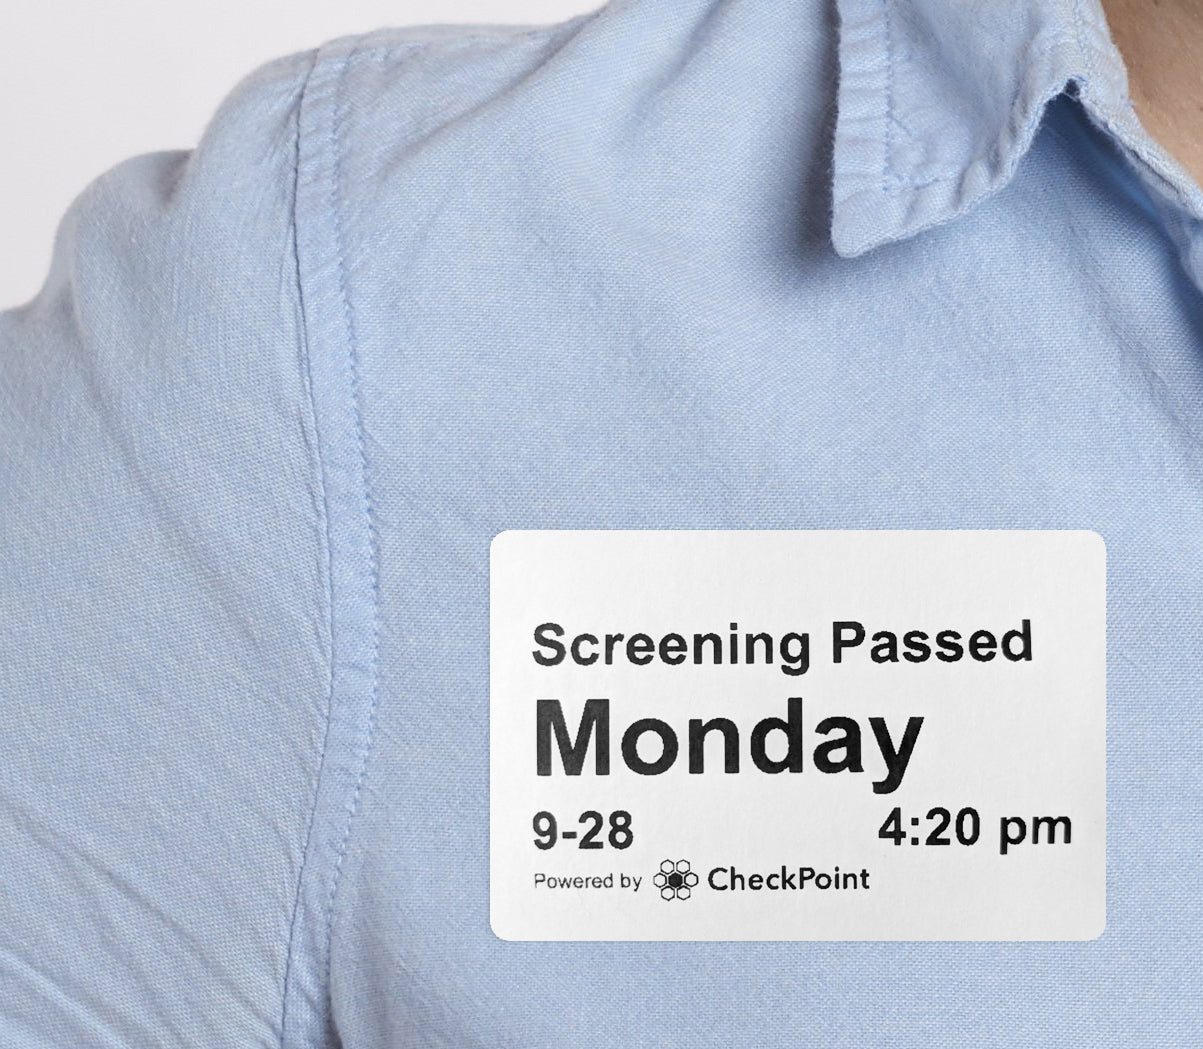 A person's shirt with a printed badge. The badge includes the date and time in large, clear text.